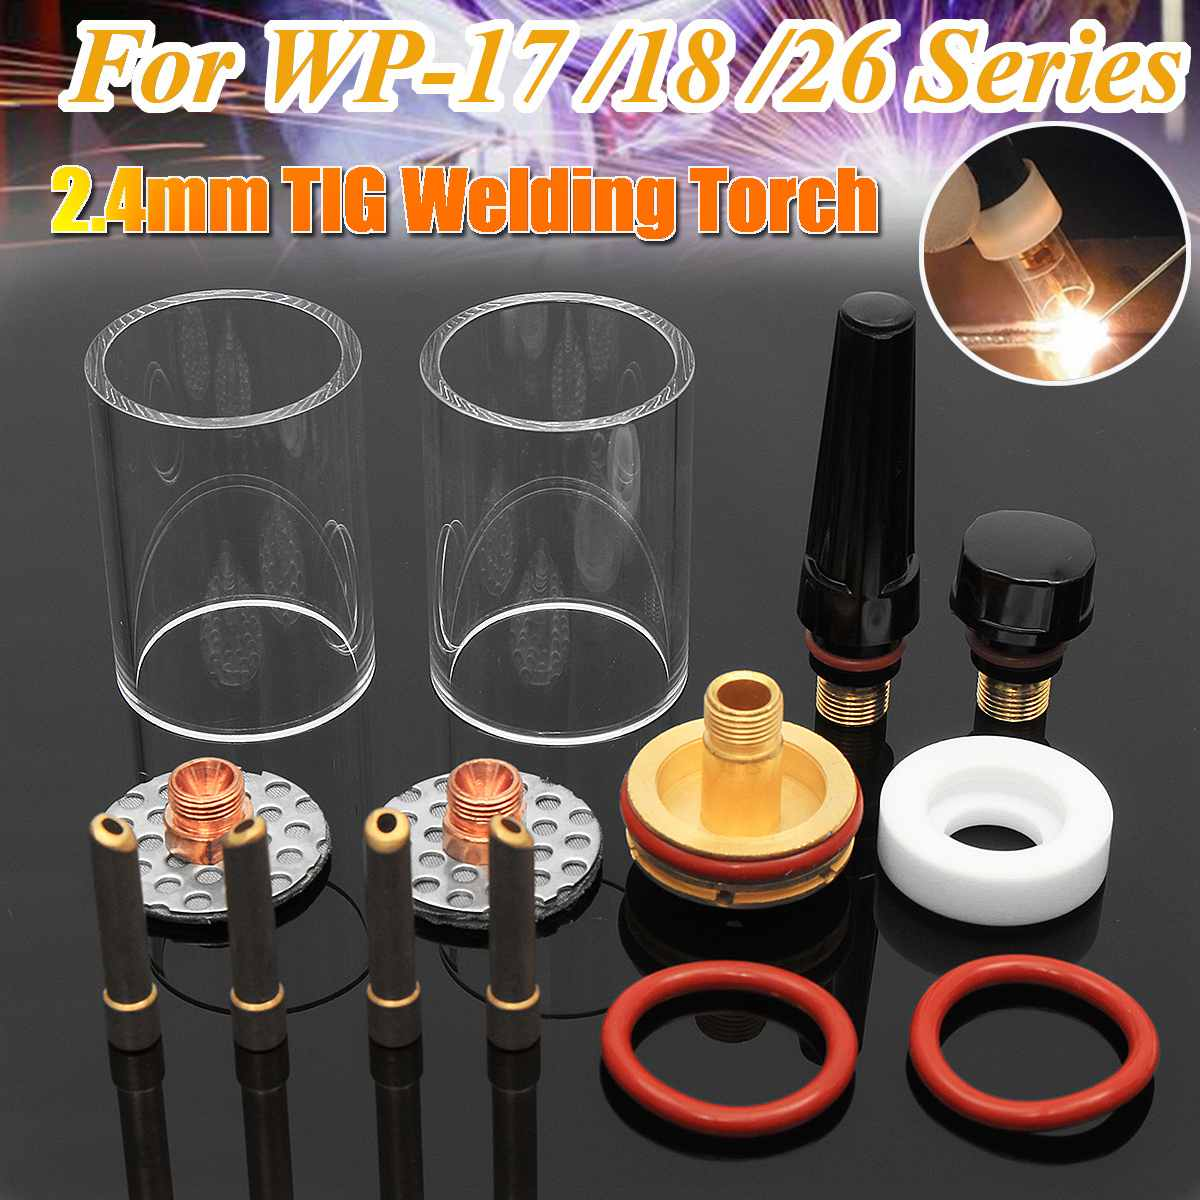 14pcs TIG Welding Torch Stubby Gas Lens Pyrex Glass Cup Practical Accessories Welding Torch Kit Argon Arc Tool For WP 17/18/26